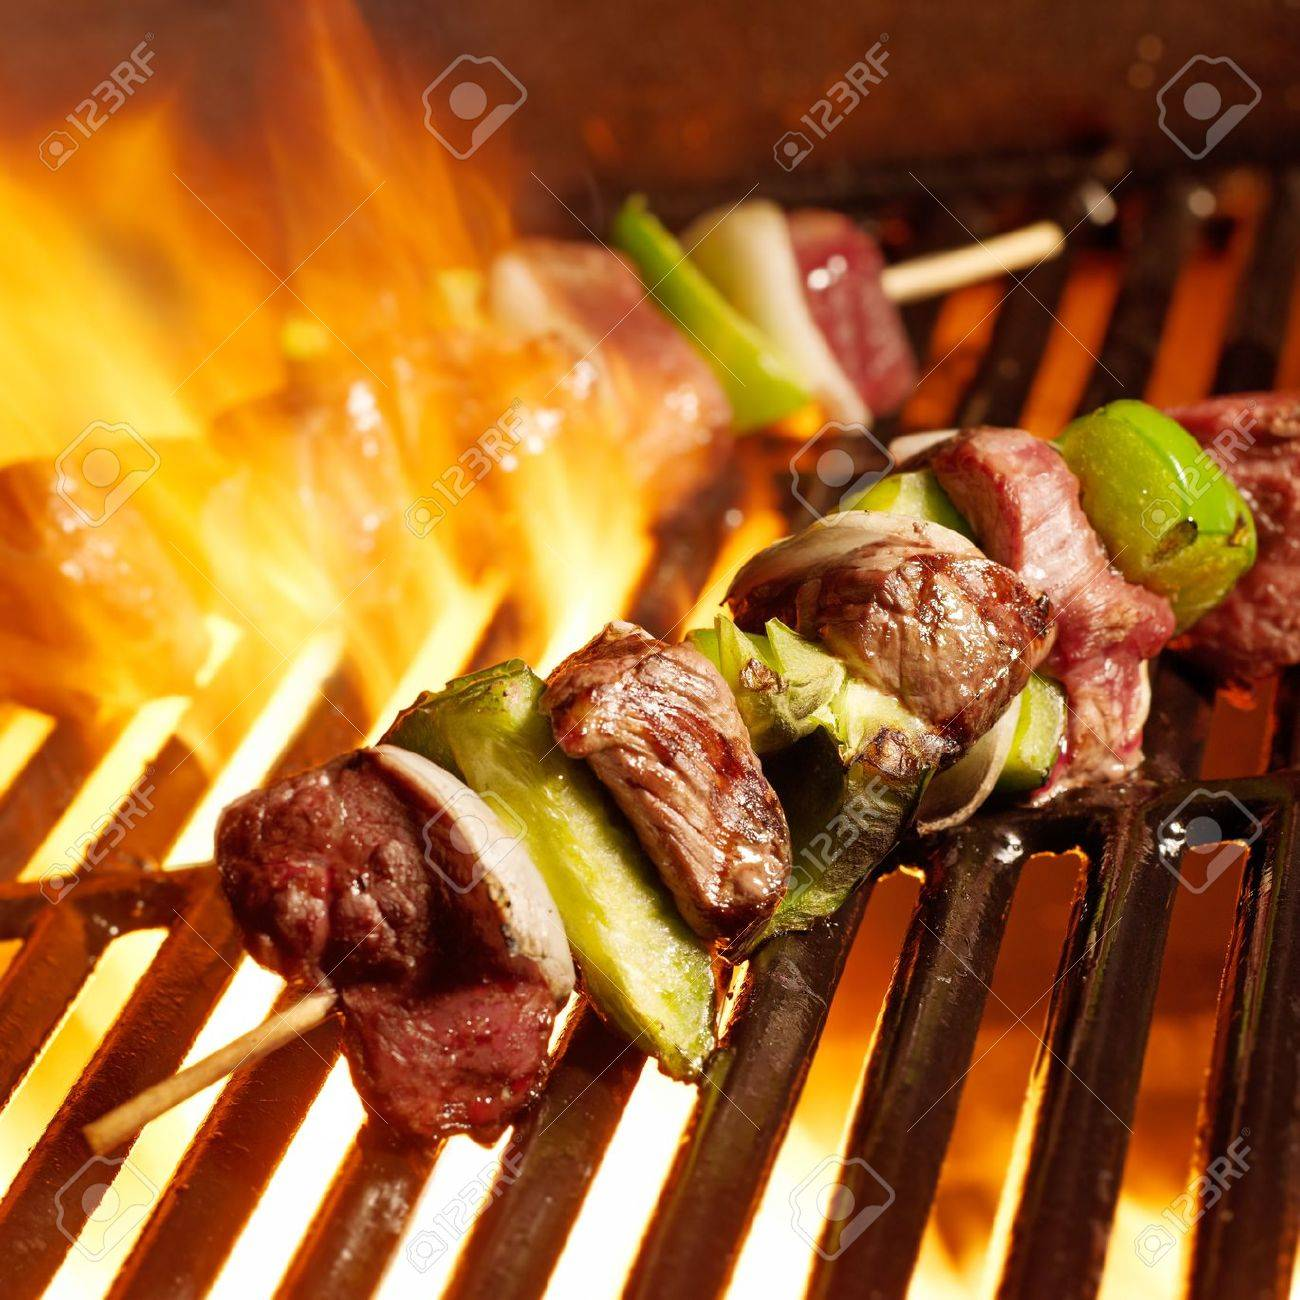 beef shish kabobs on the grill Stock Photo - 14940980